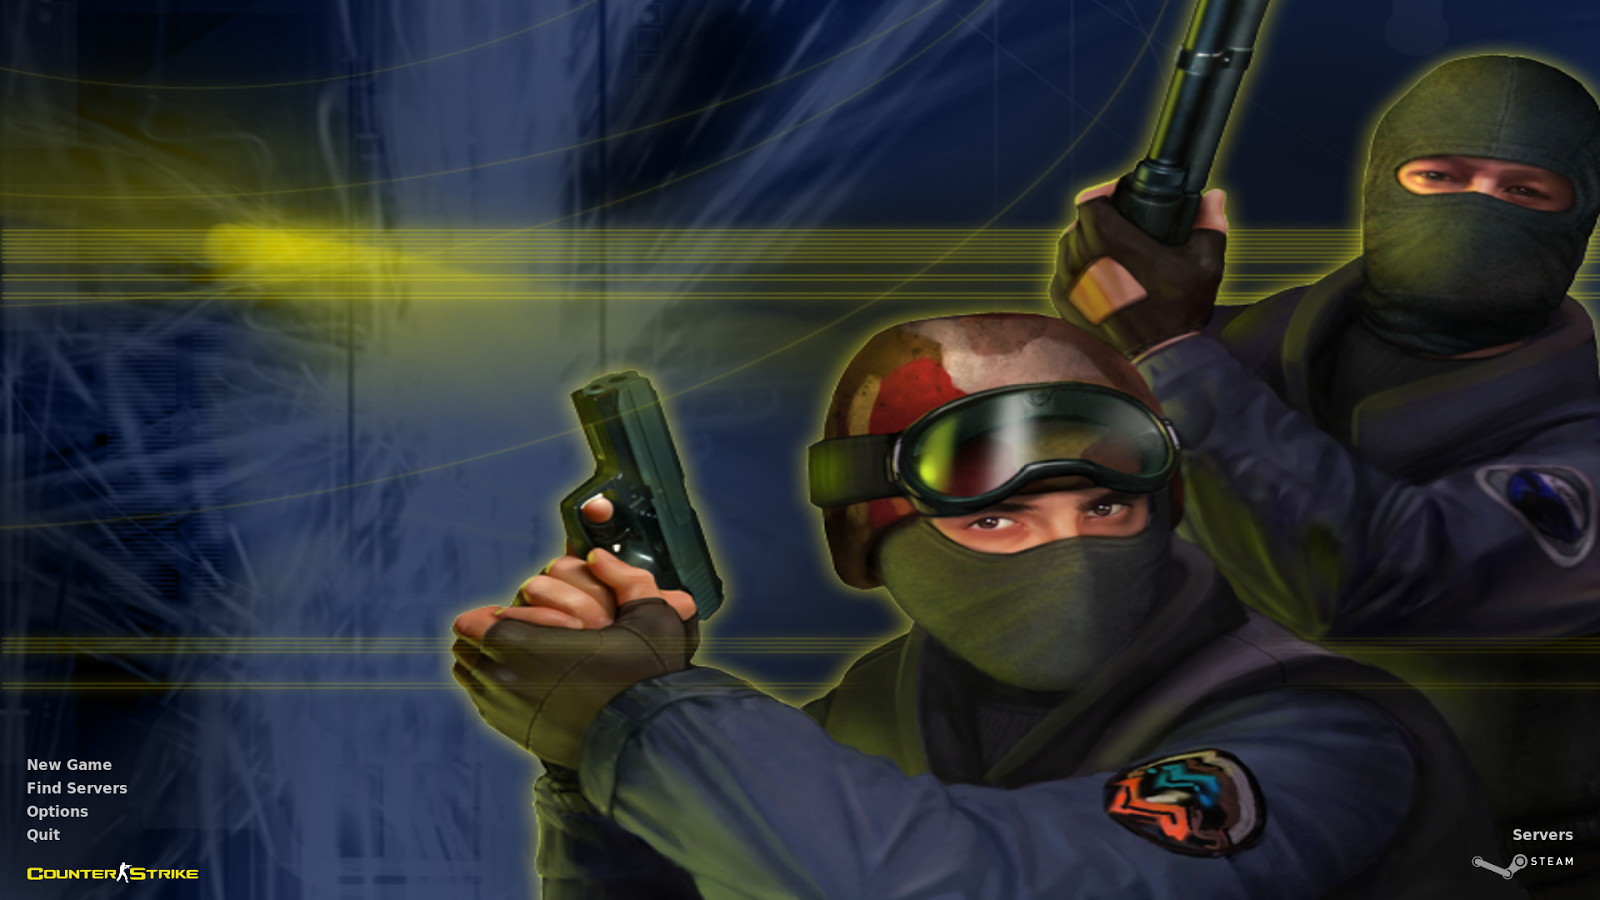 Half-Life And Counter-Strike Games Now Available Natively